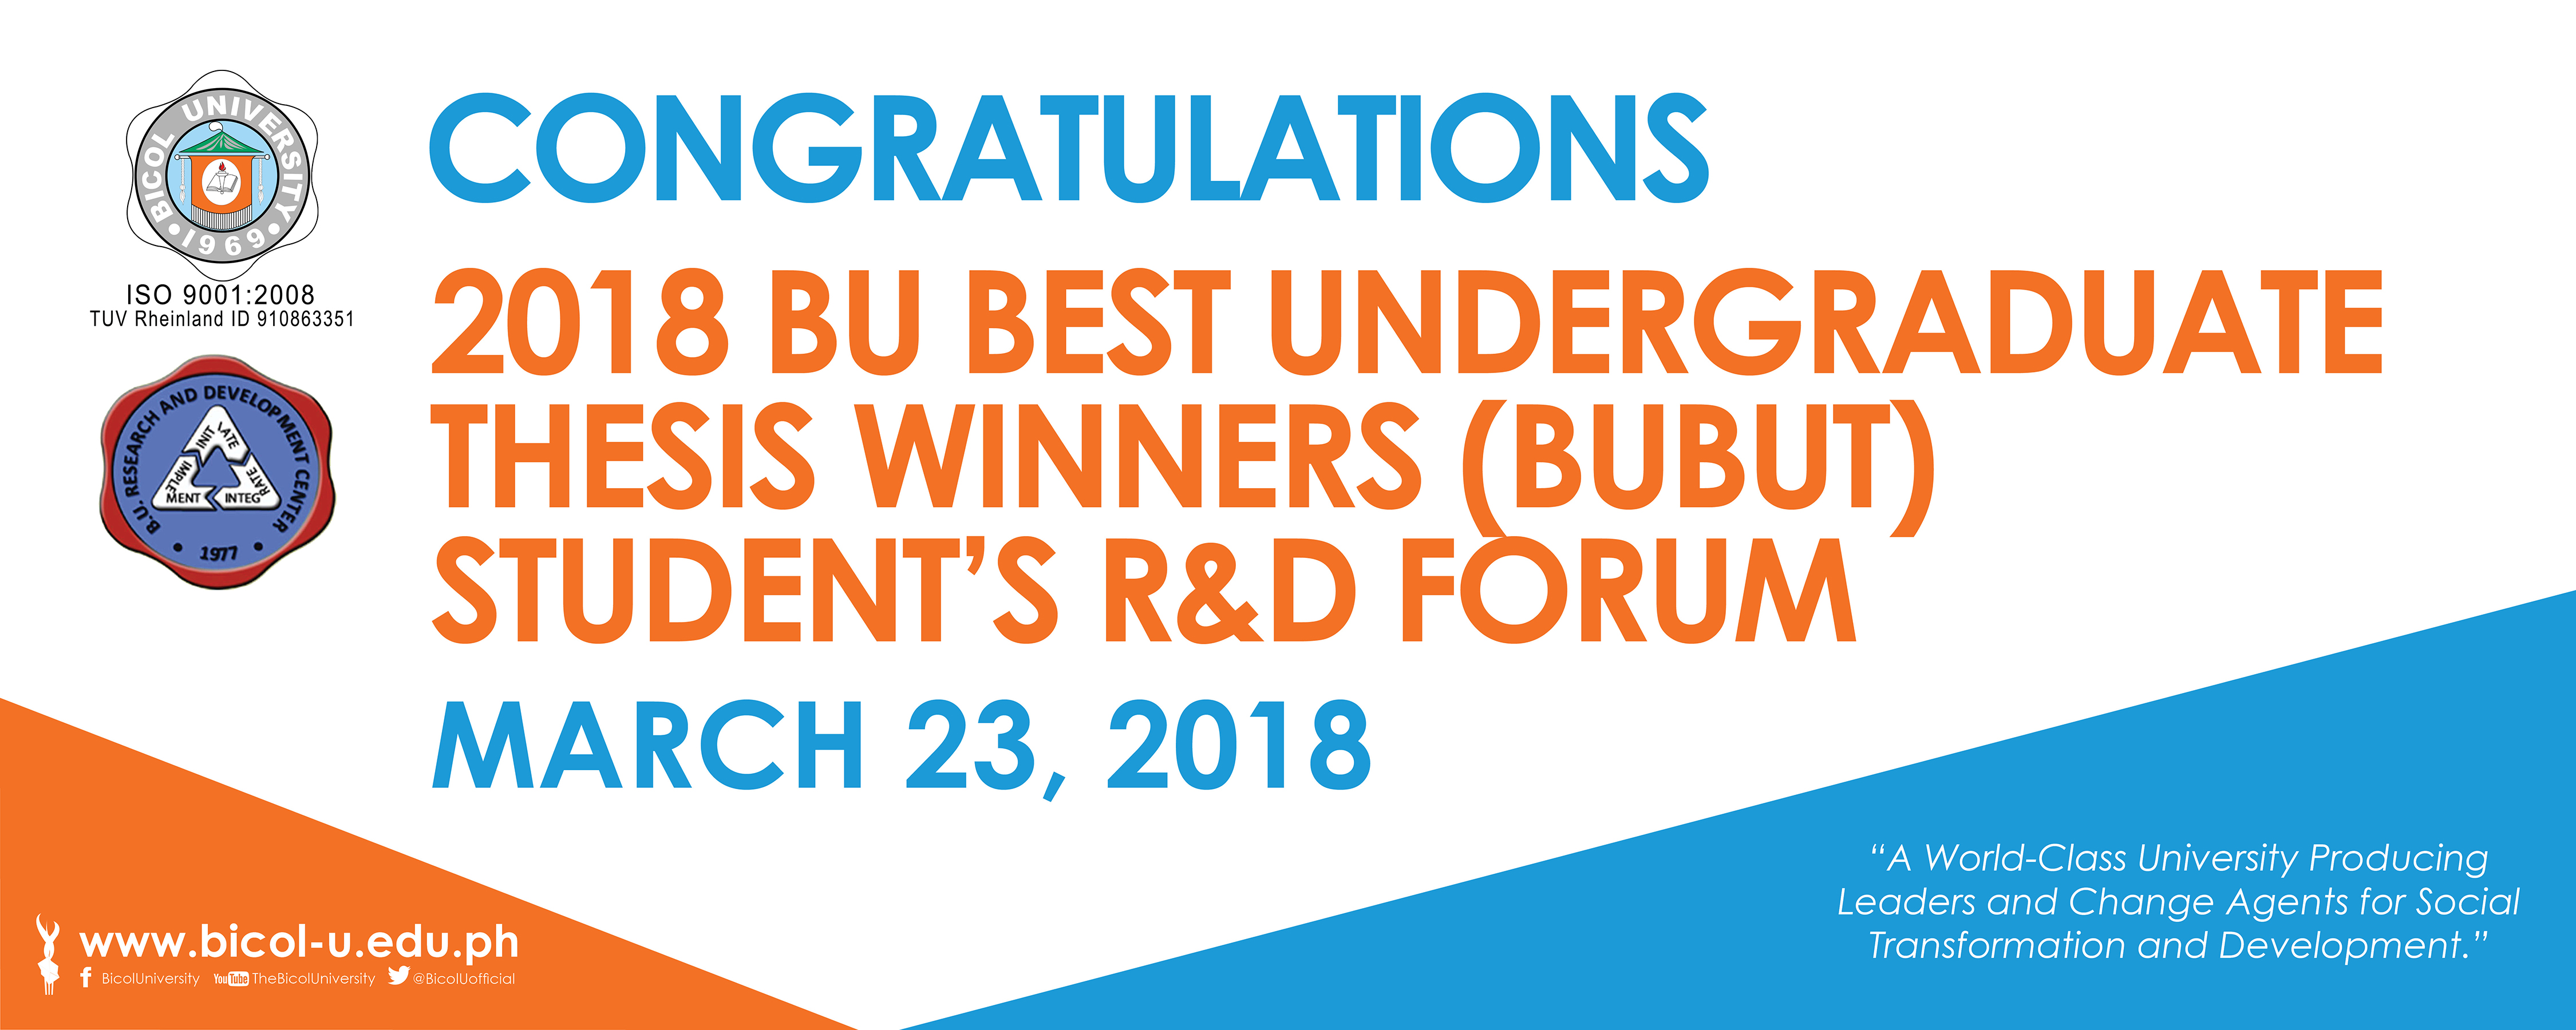 Winners of the 2018 BU Best Undergraduate Thesis (BUBUT